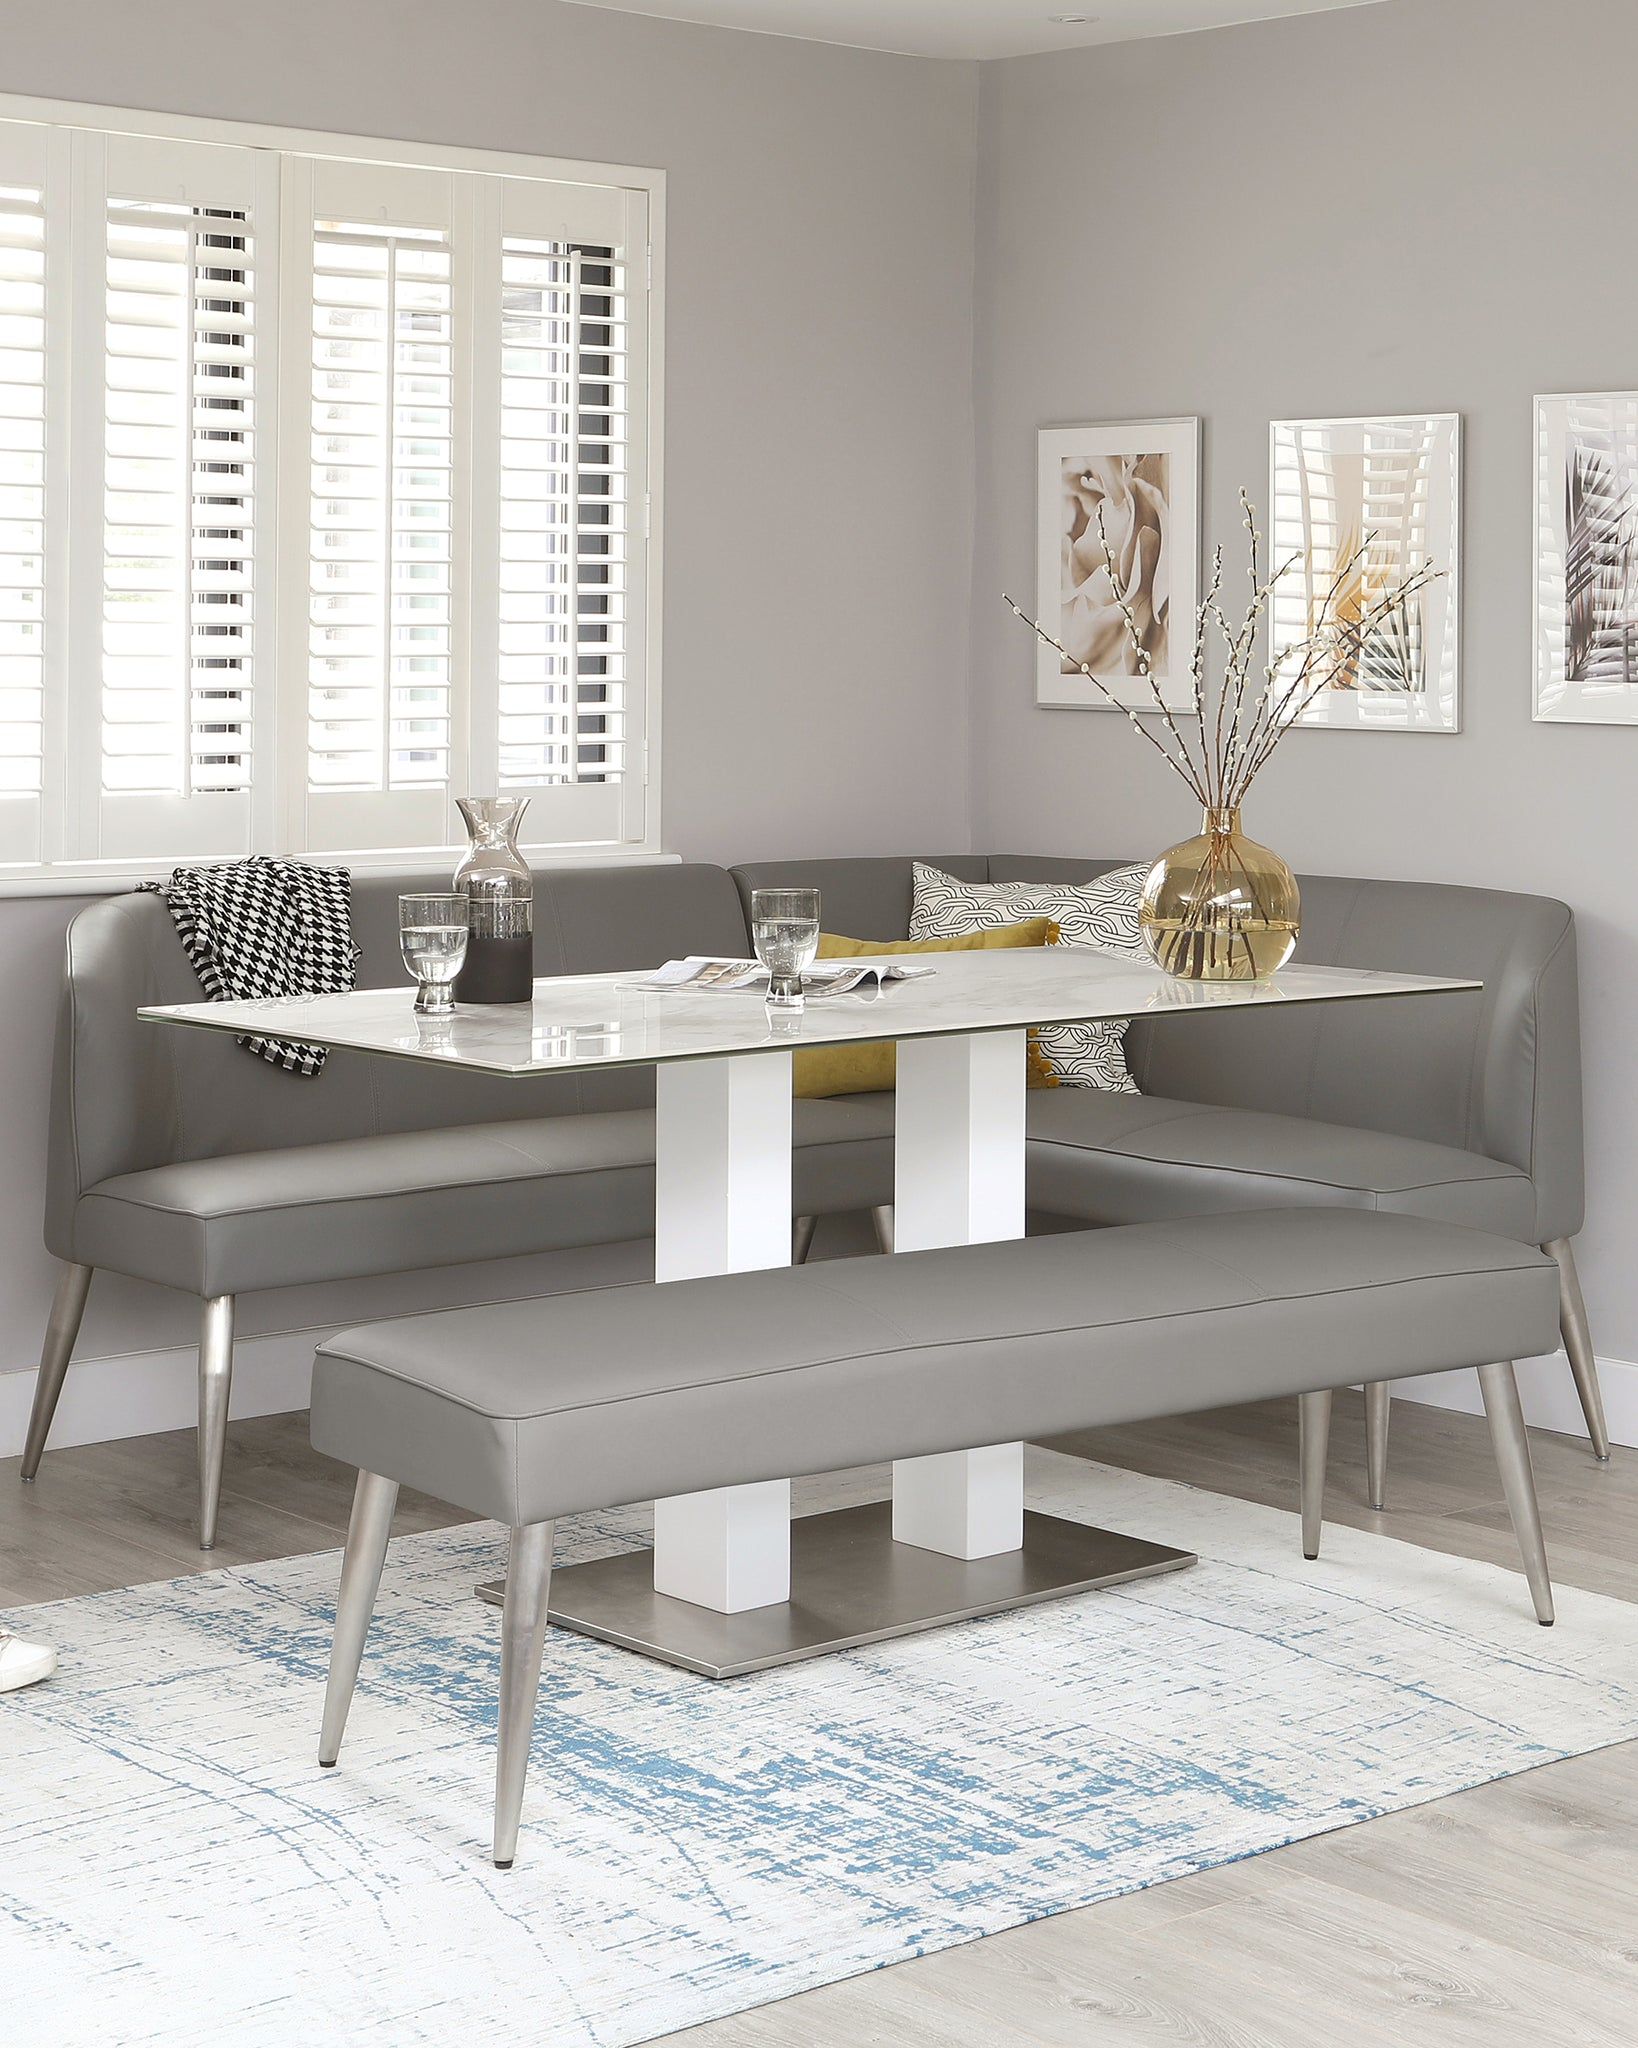 Mia Ceramic Marble Table With Mellow Left Hand Corner Bench Set